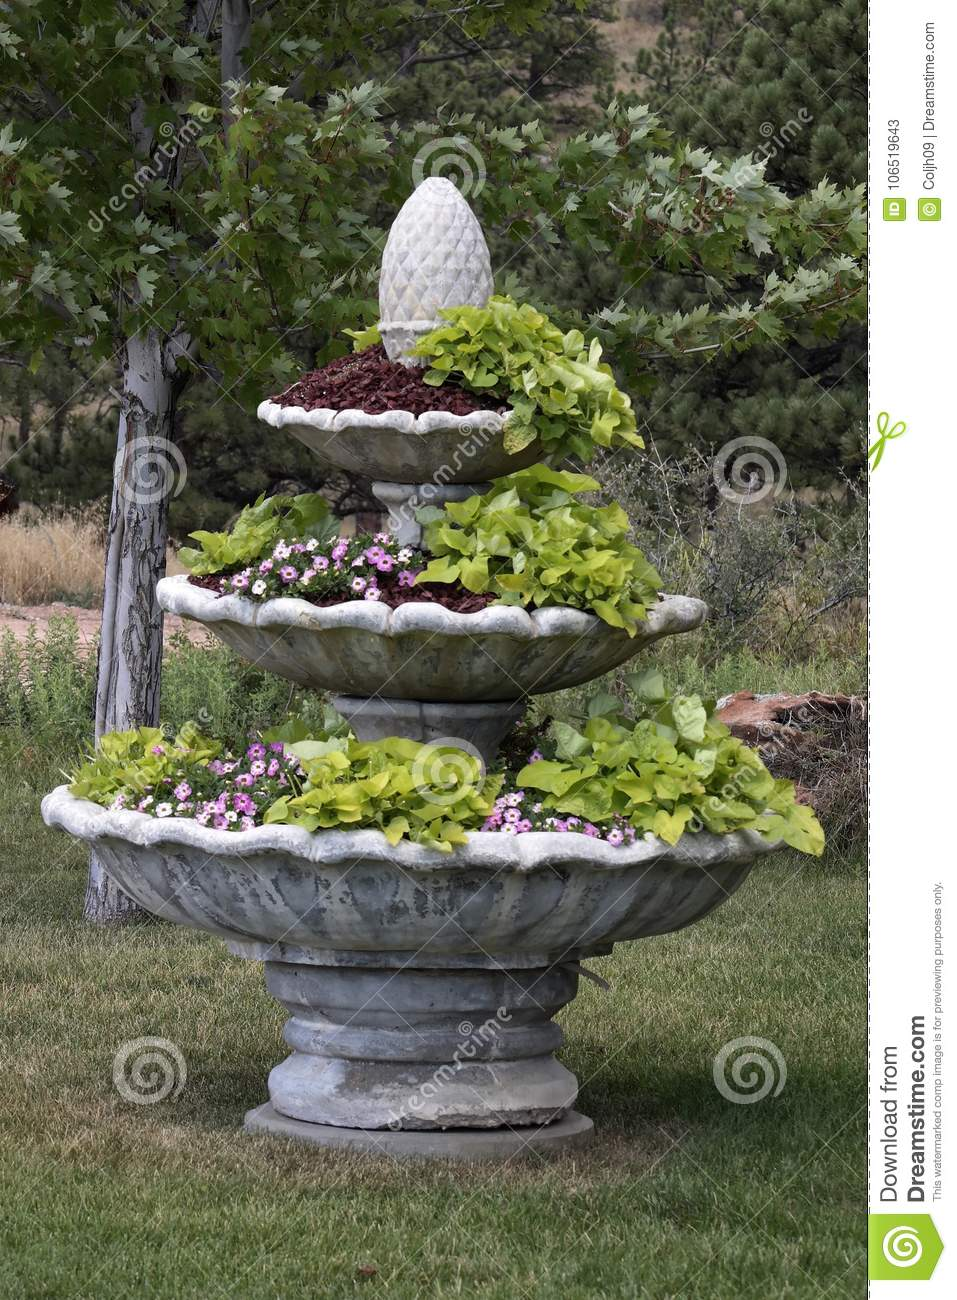 Download Huge Tiered Garden Planter Stock Image. Image Of Three   106519643